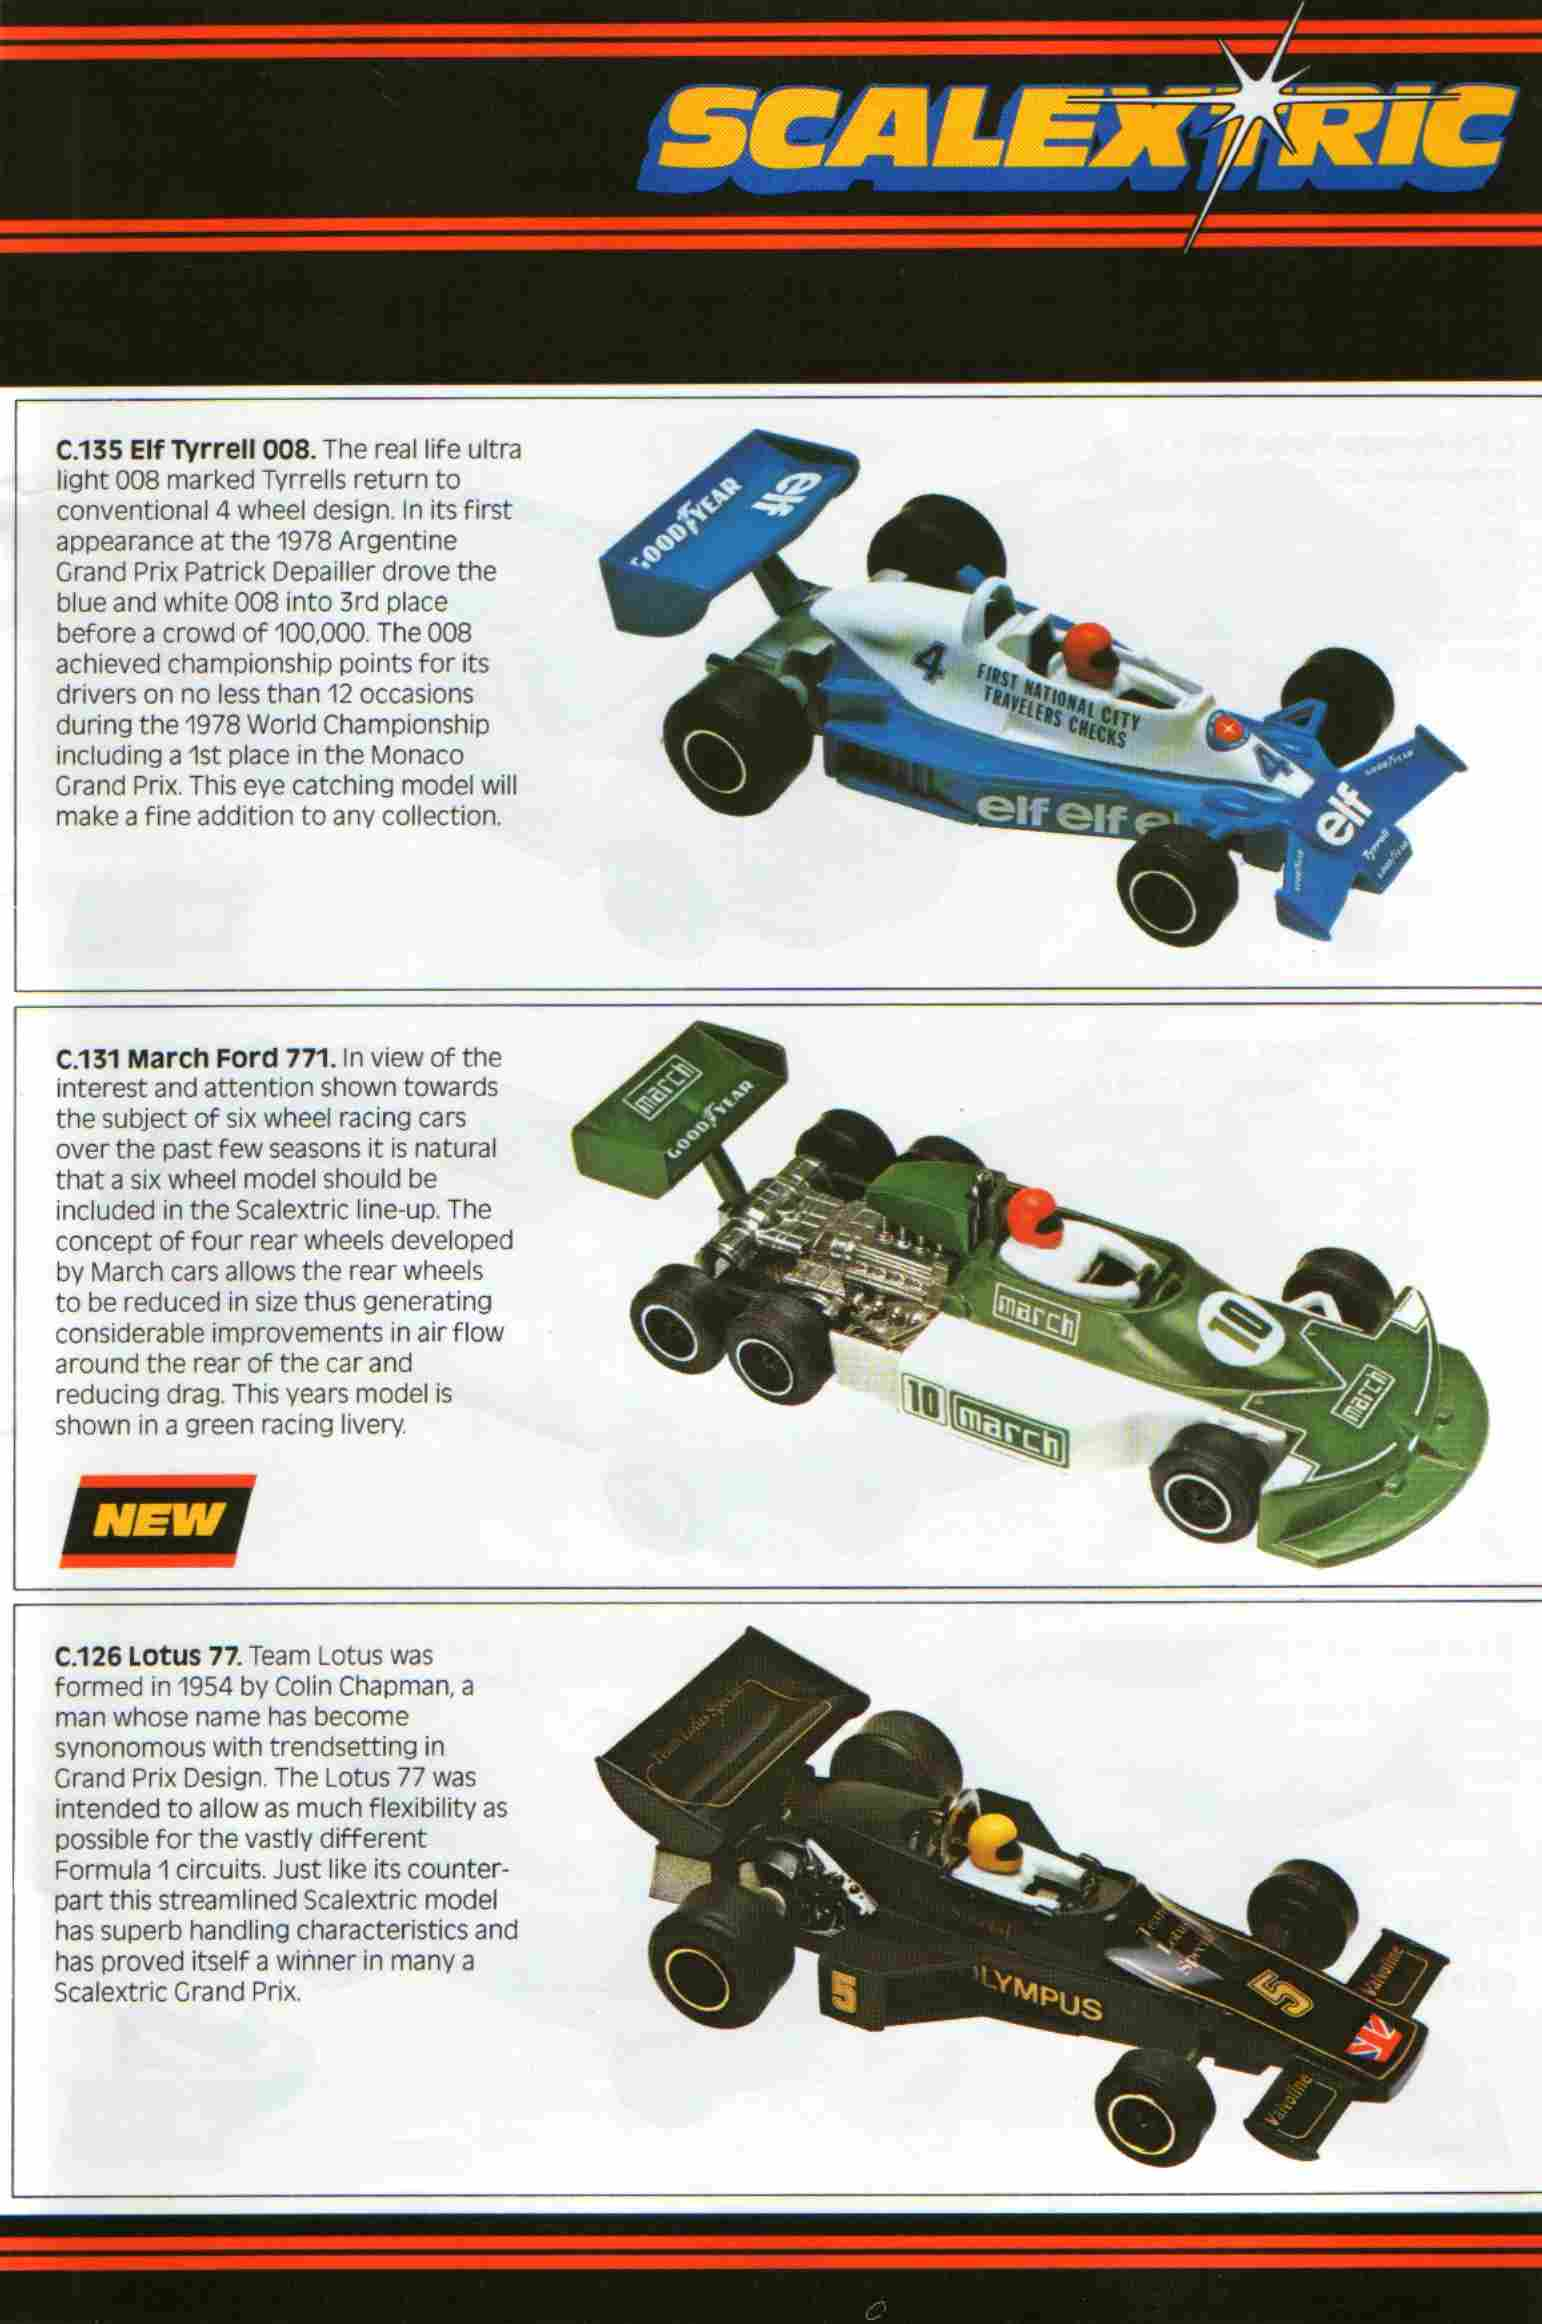 Scalextric Lotus 77, March-Ford 771 and Tyrrell 008 slot cars